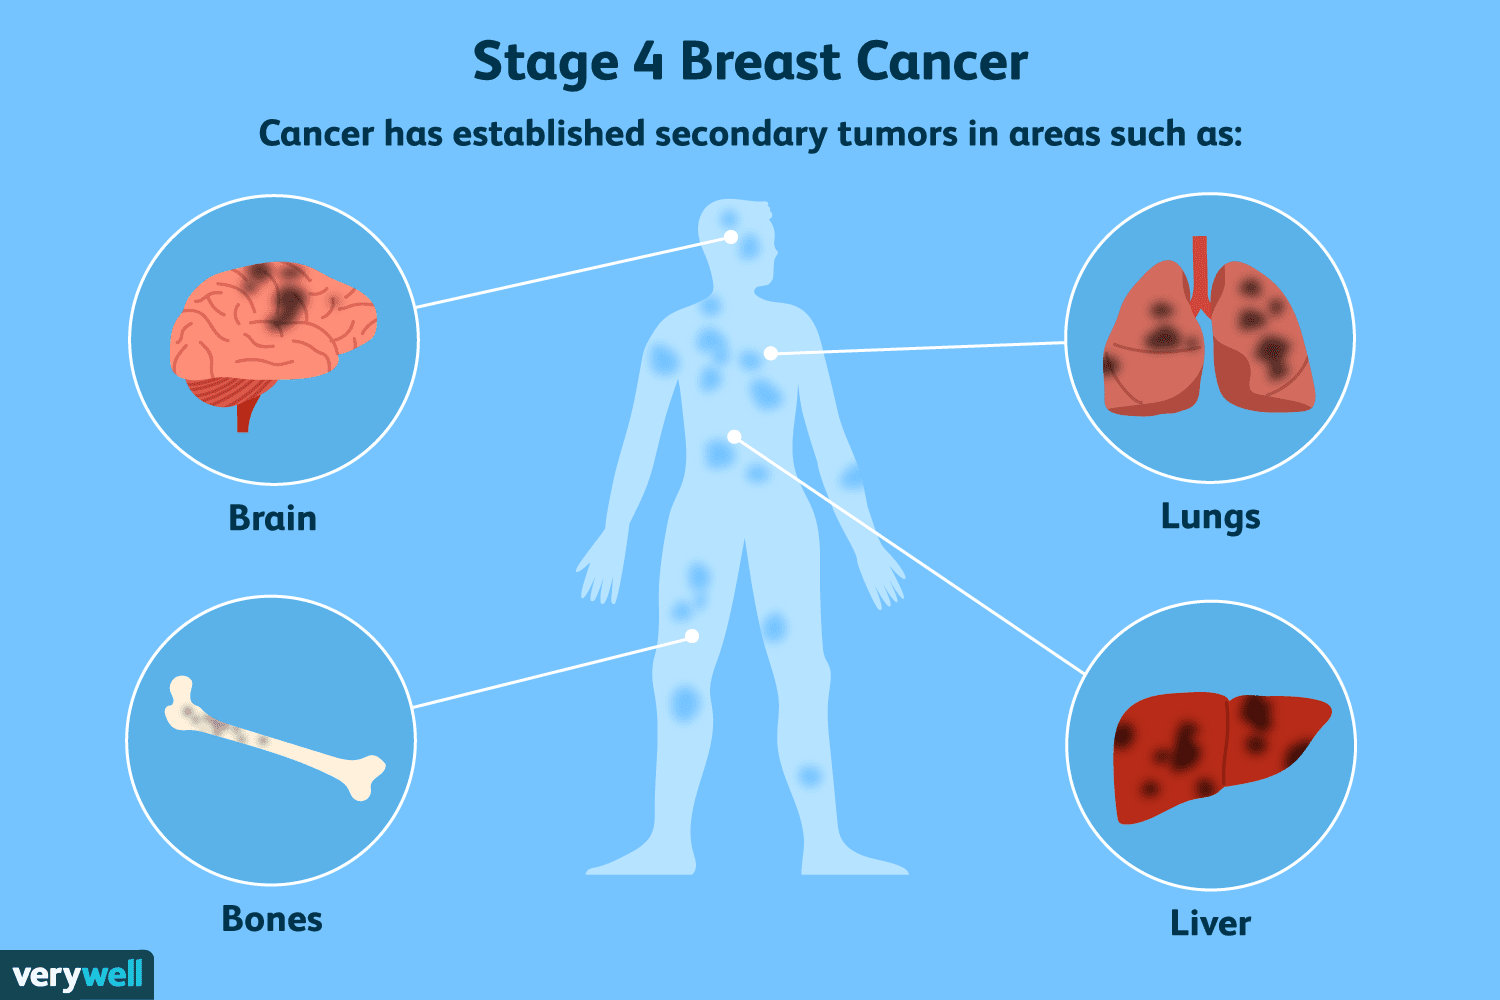 metastatic cancer how long to live